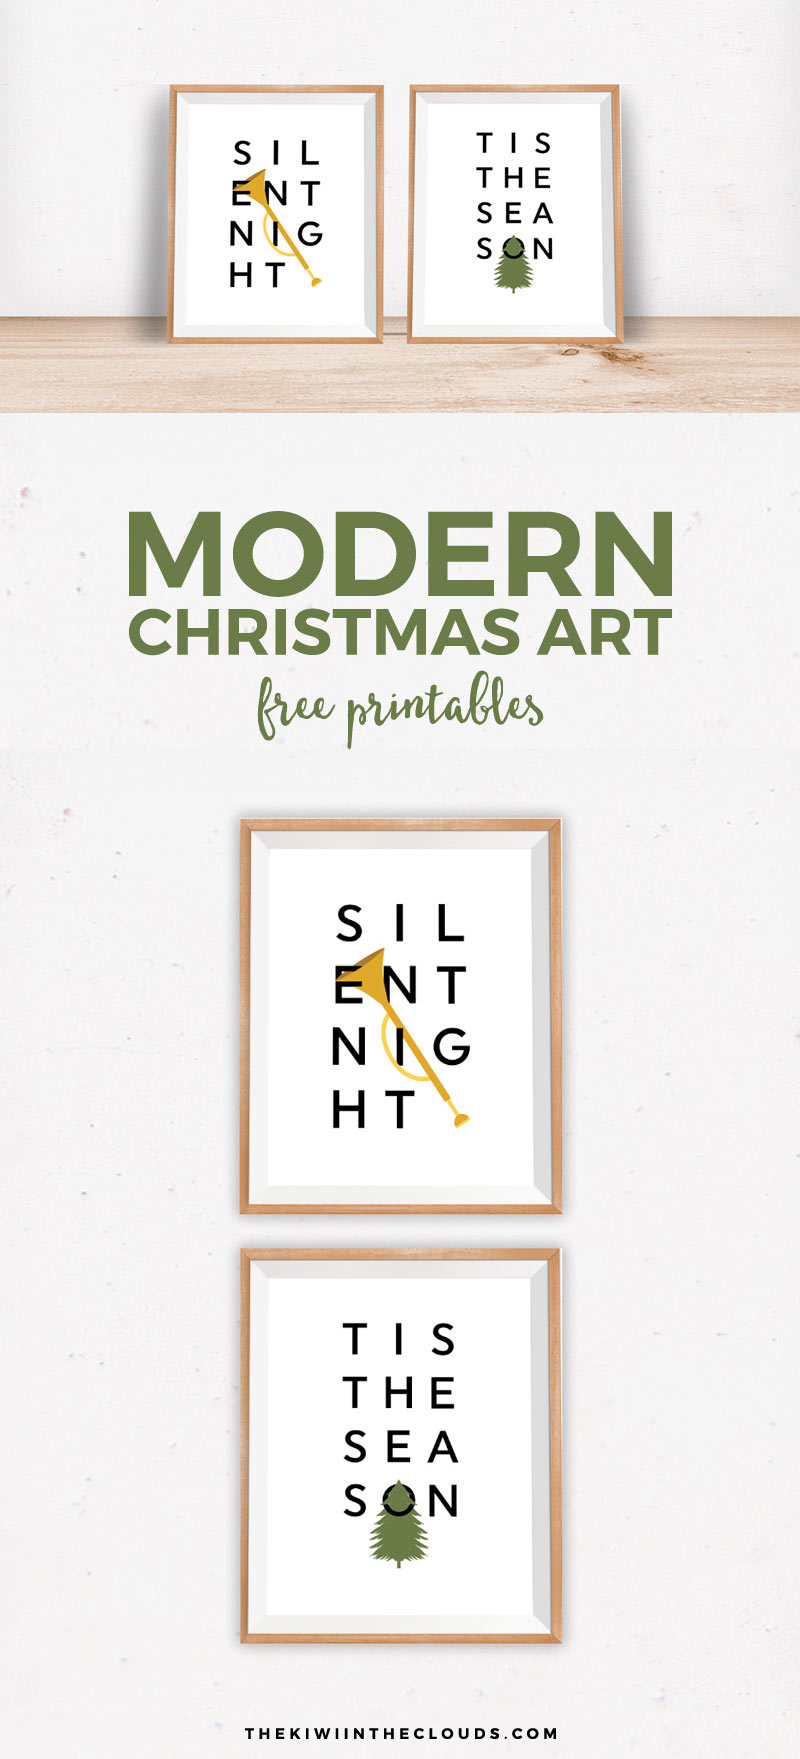 Celebrate the holiday season with these free Christmas prints. They're modern, simple and let your home decor shine.